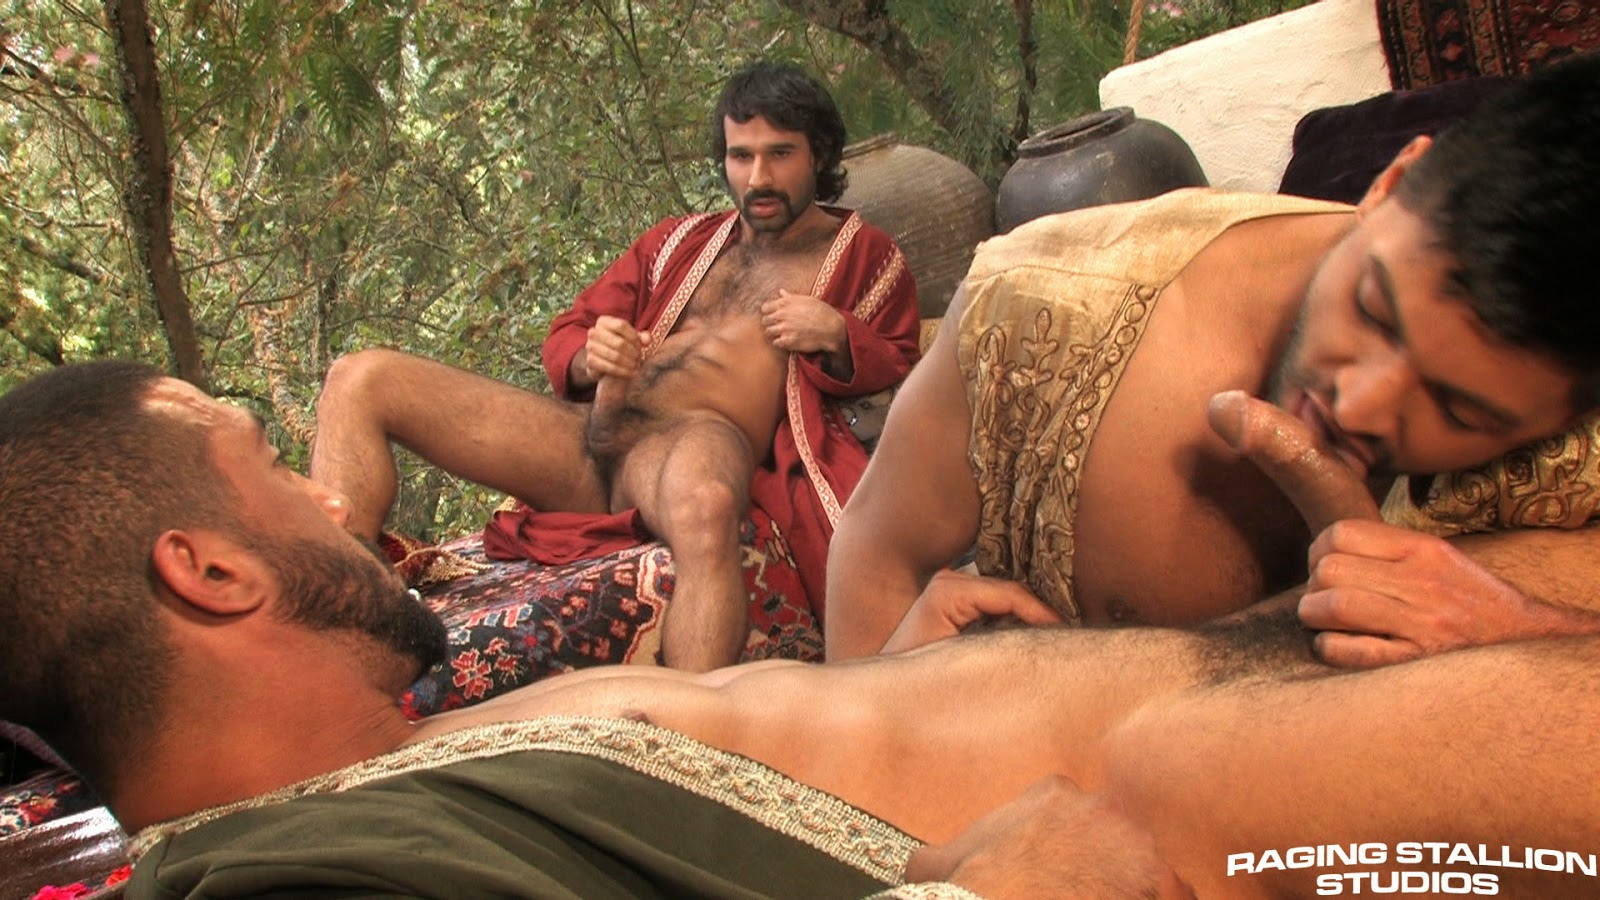 Arabian gay sex boys hot movie group 5